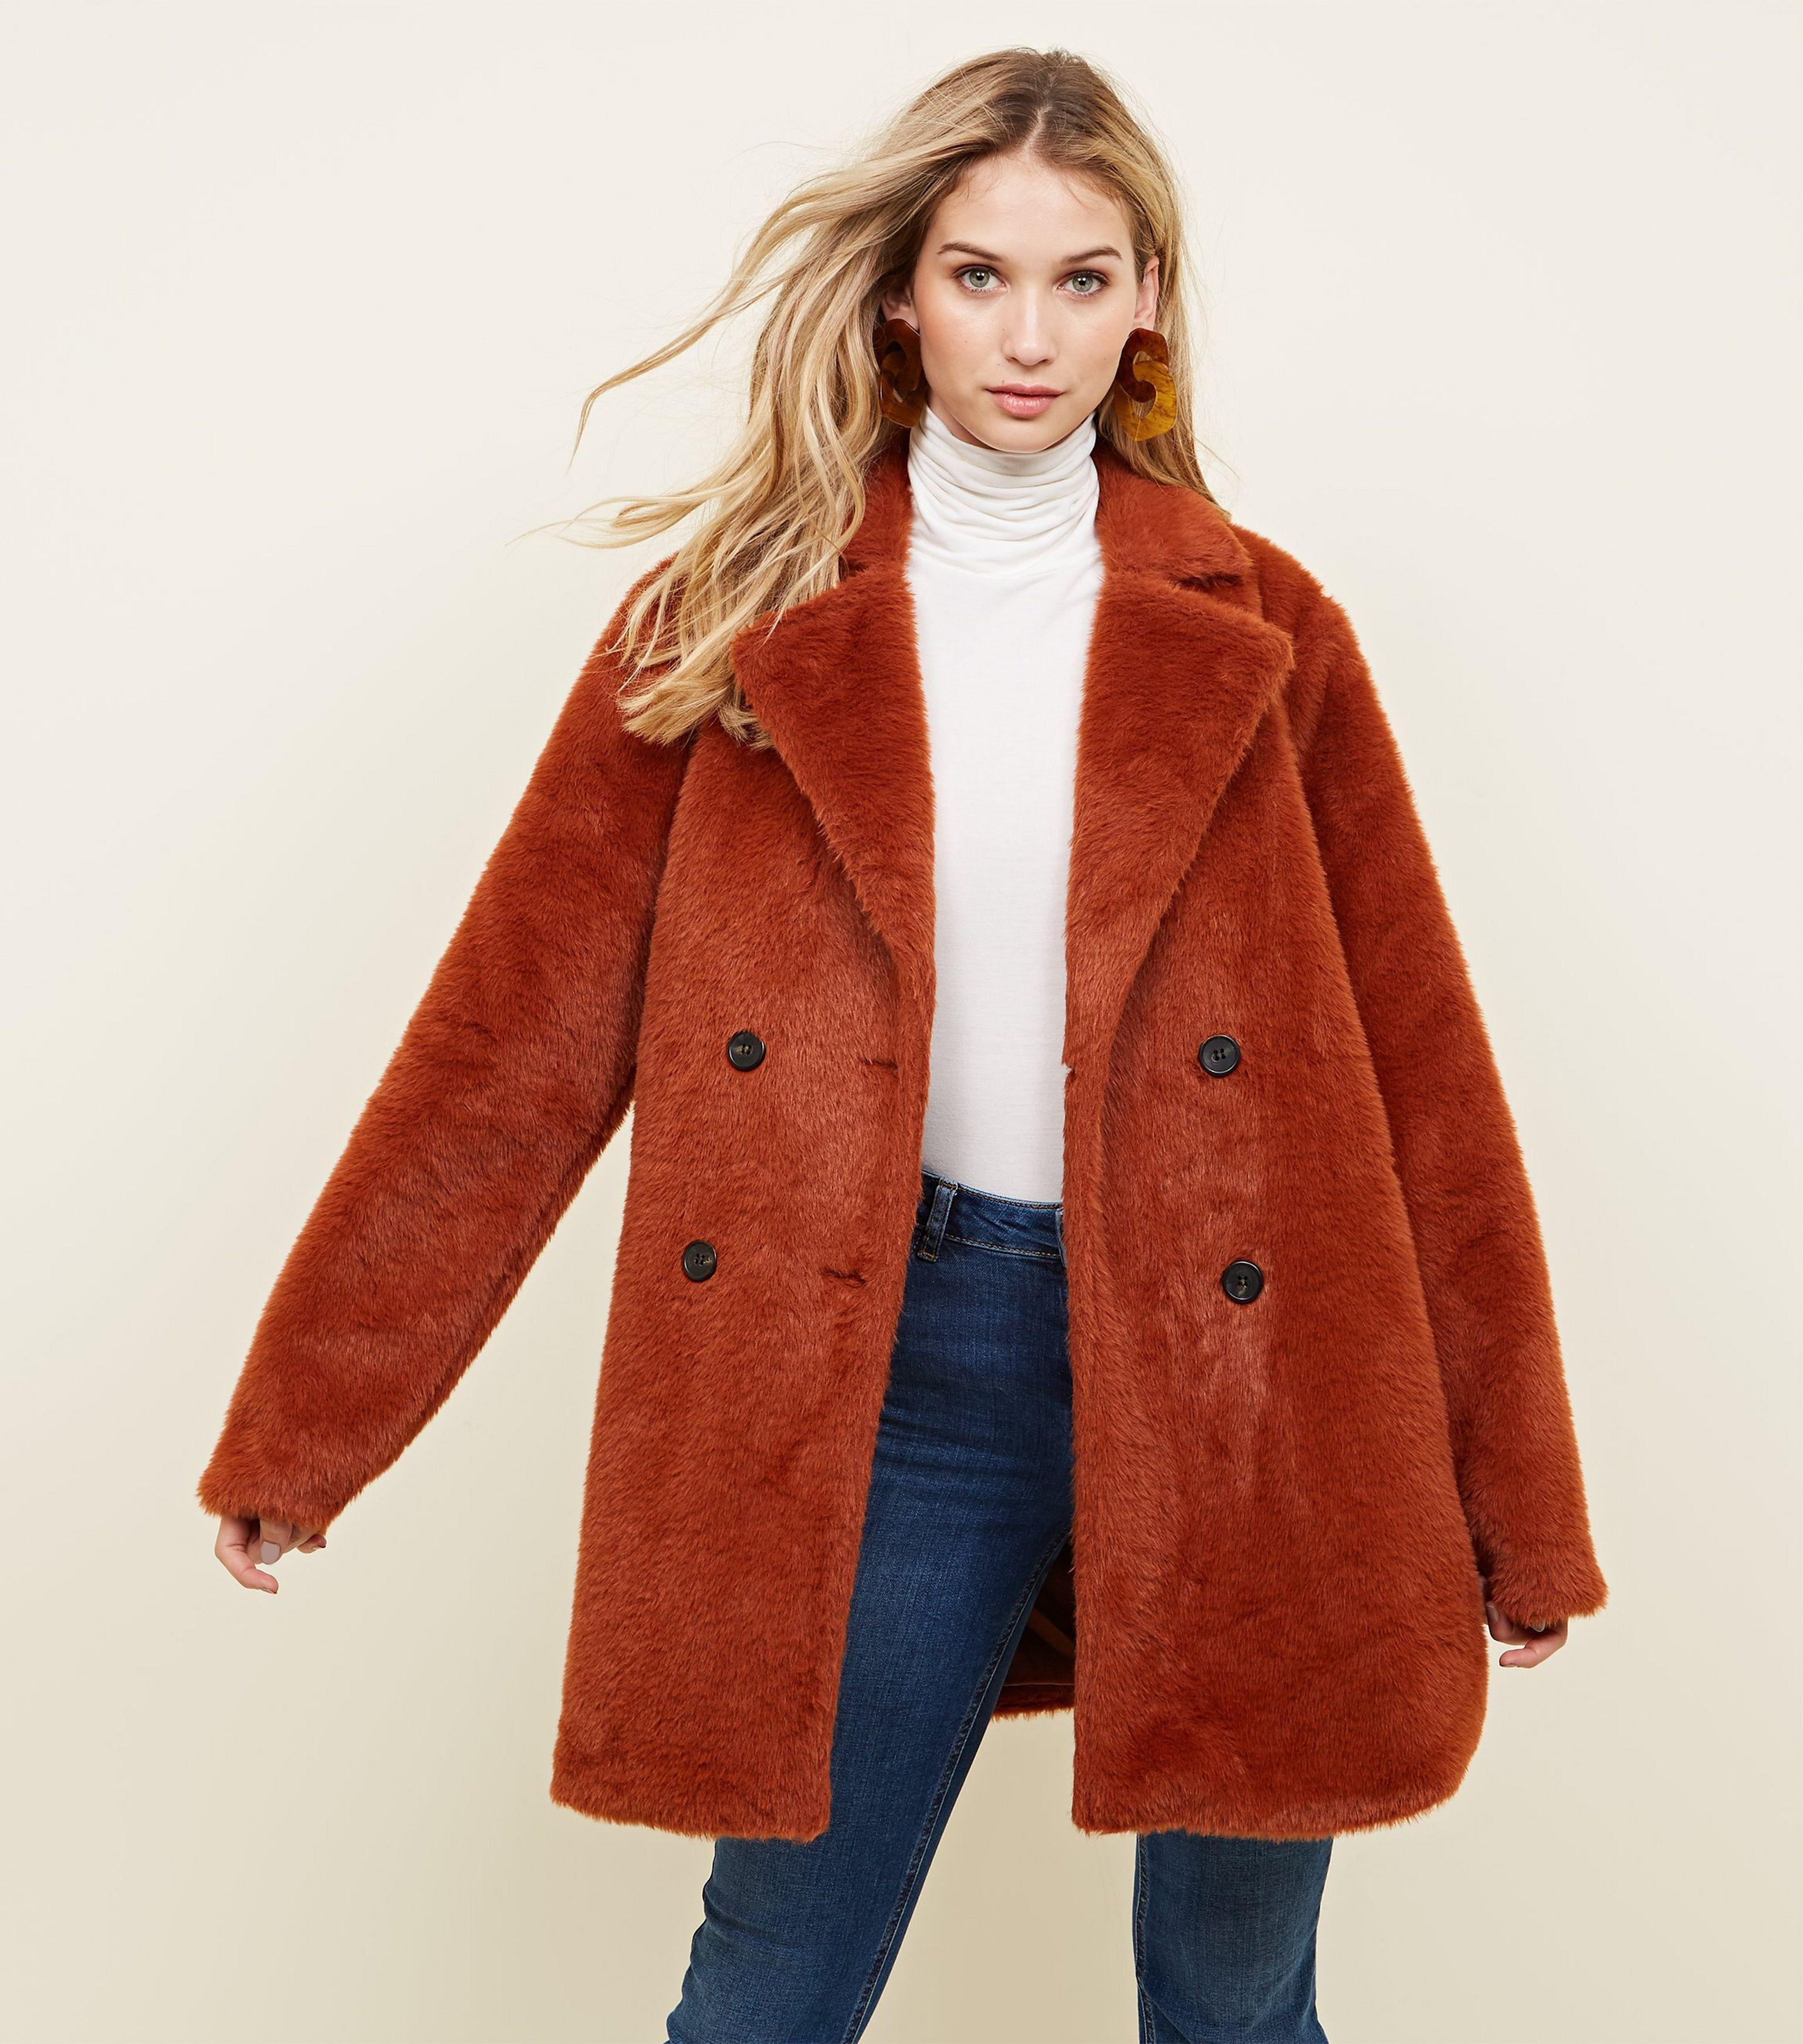 93b798550478 New Look Rust Fluffy Faux Fur Double Breasted Coat - Lyst